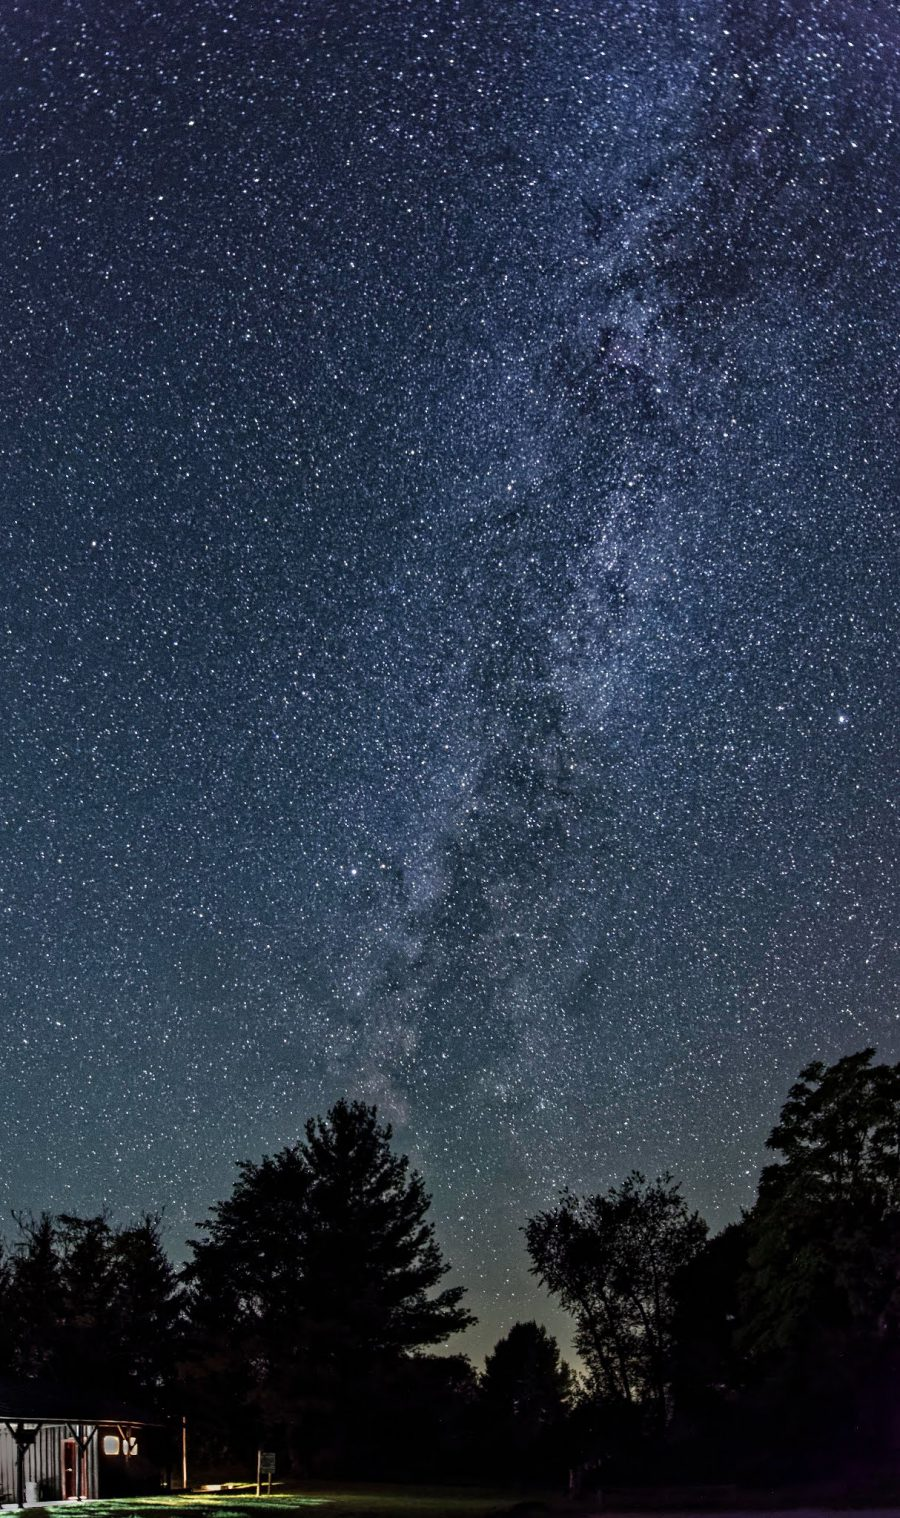 Rappahannock County Park Awarded International Dark Sky Park Designation Thumbnail